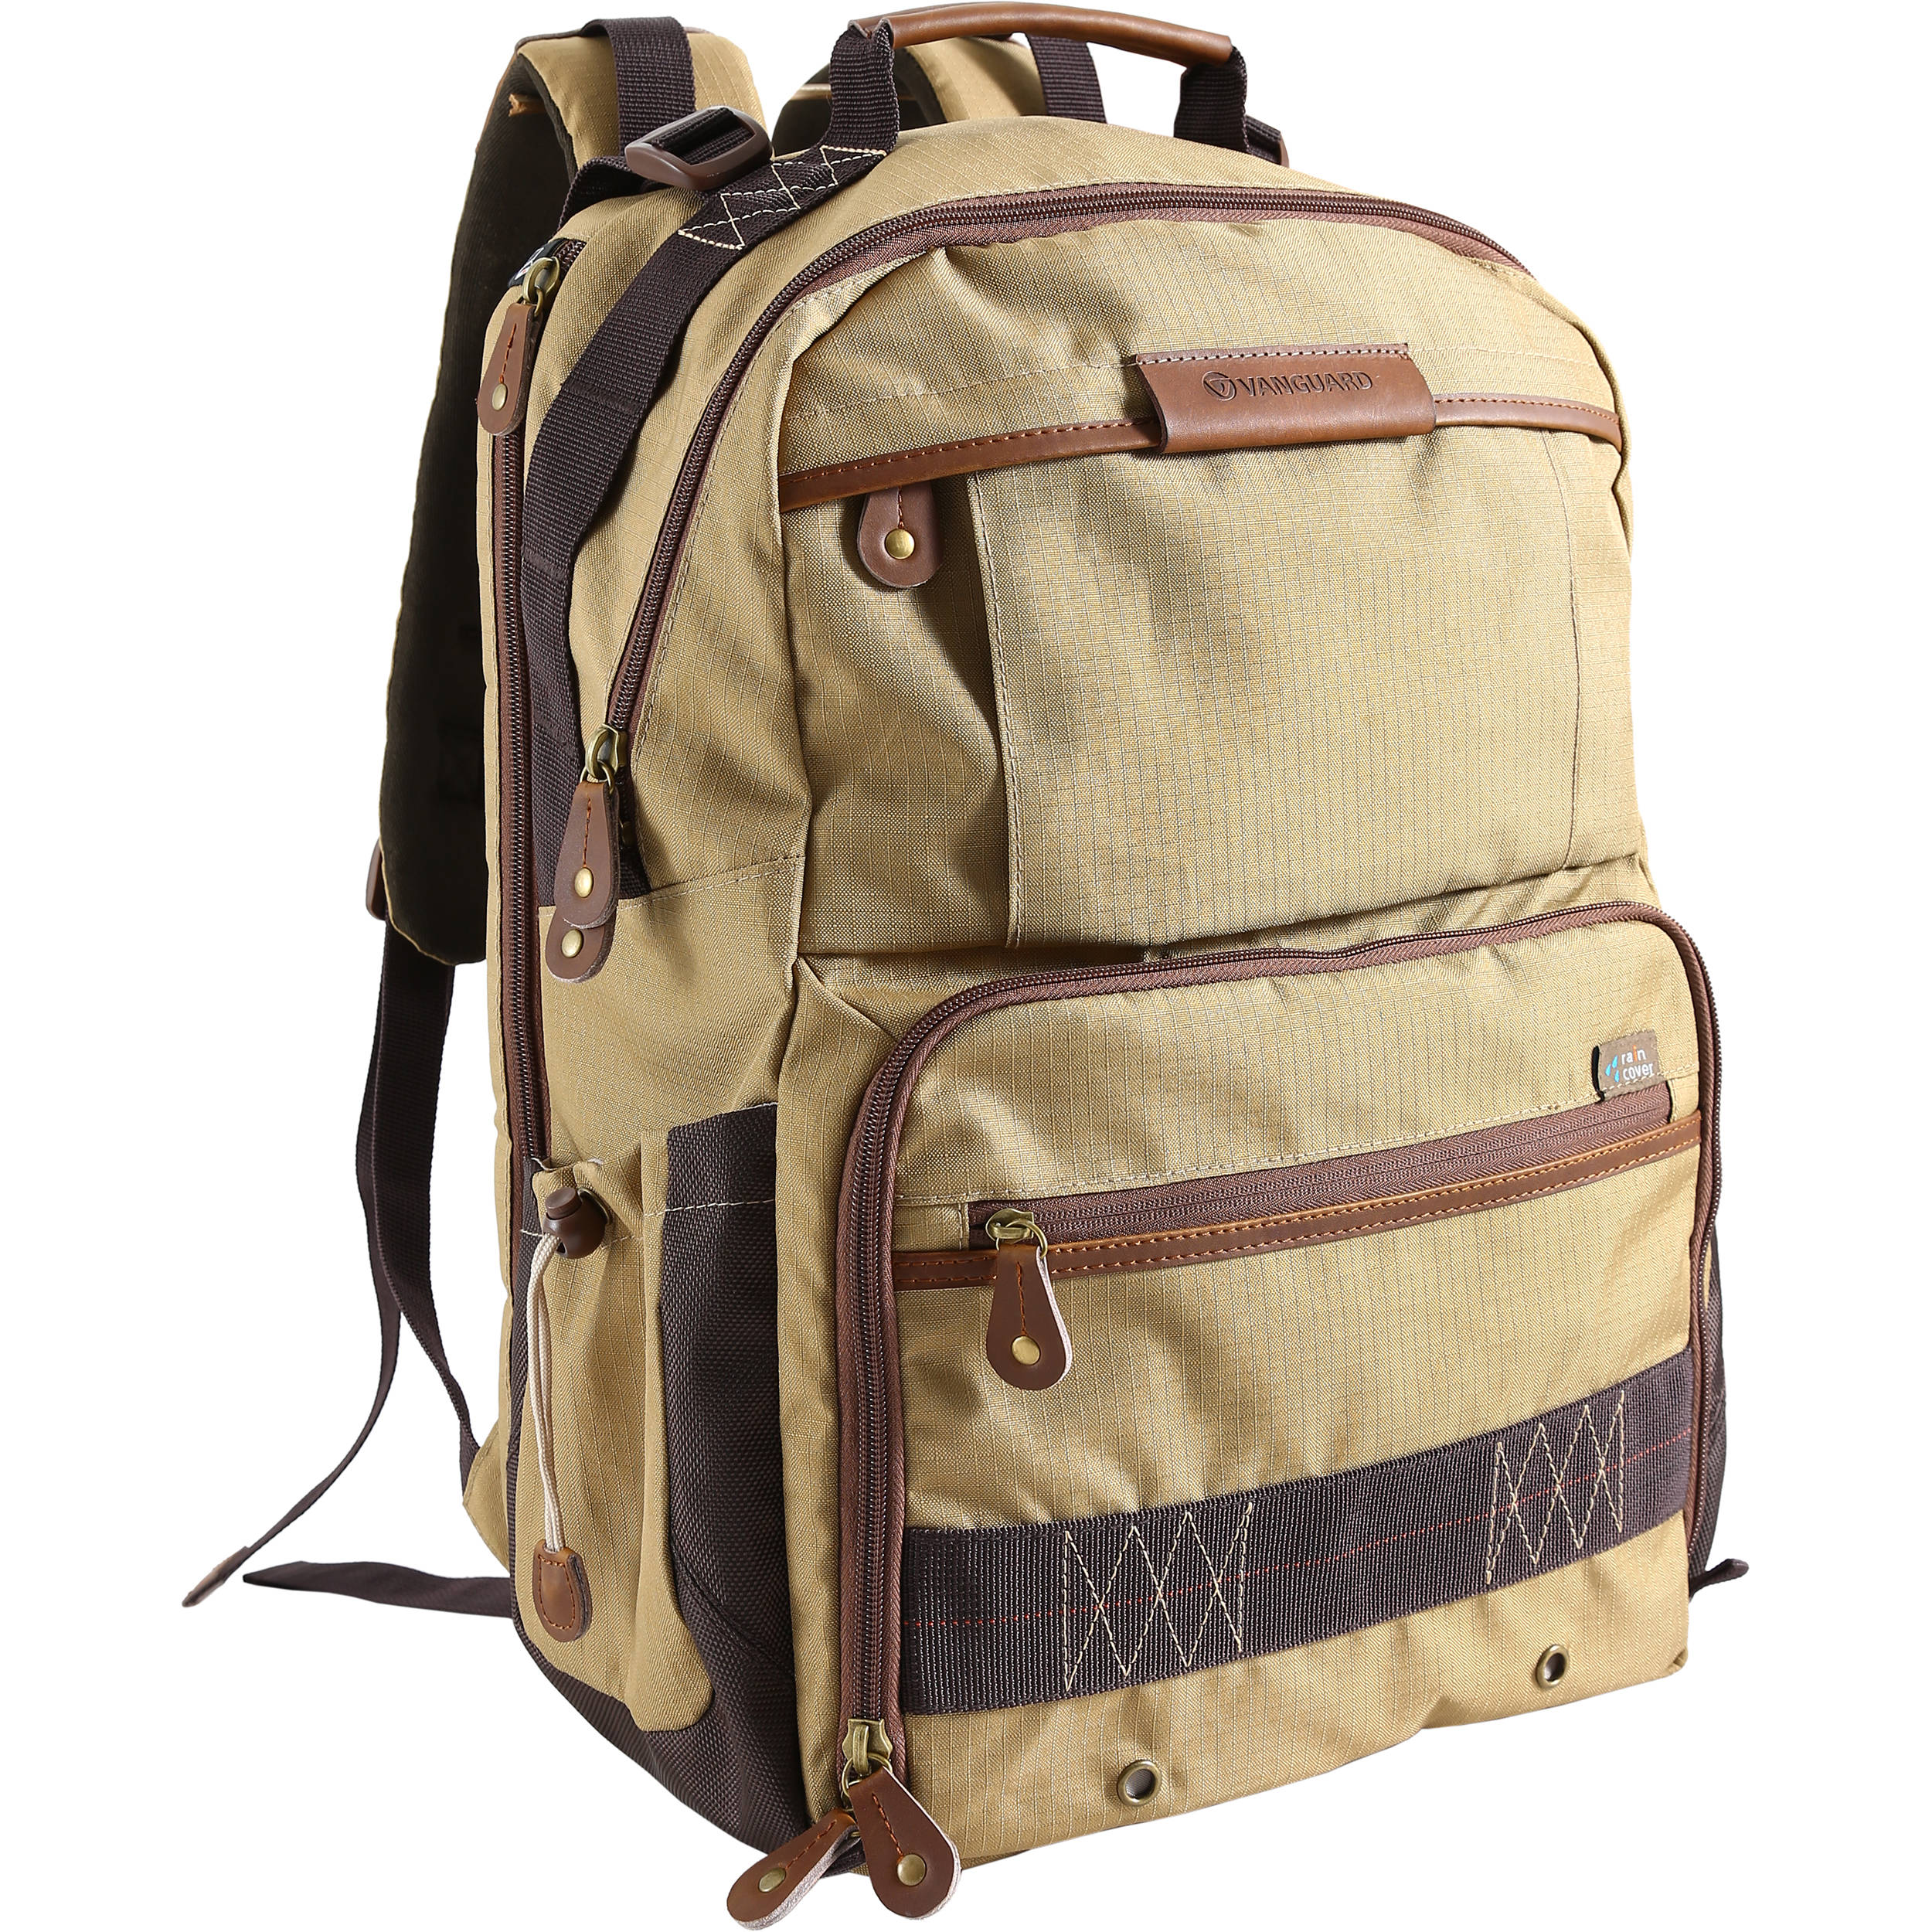 Vanguard Havana 48backpack (brown)